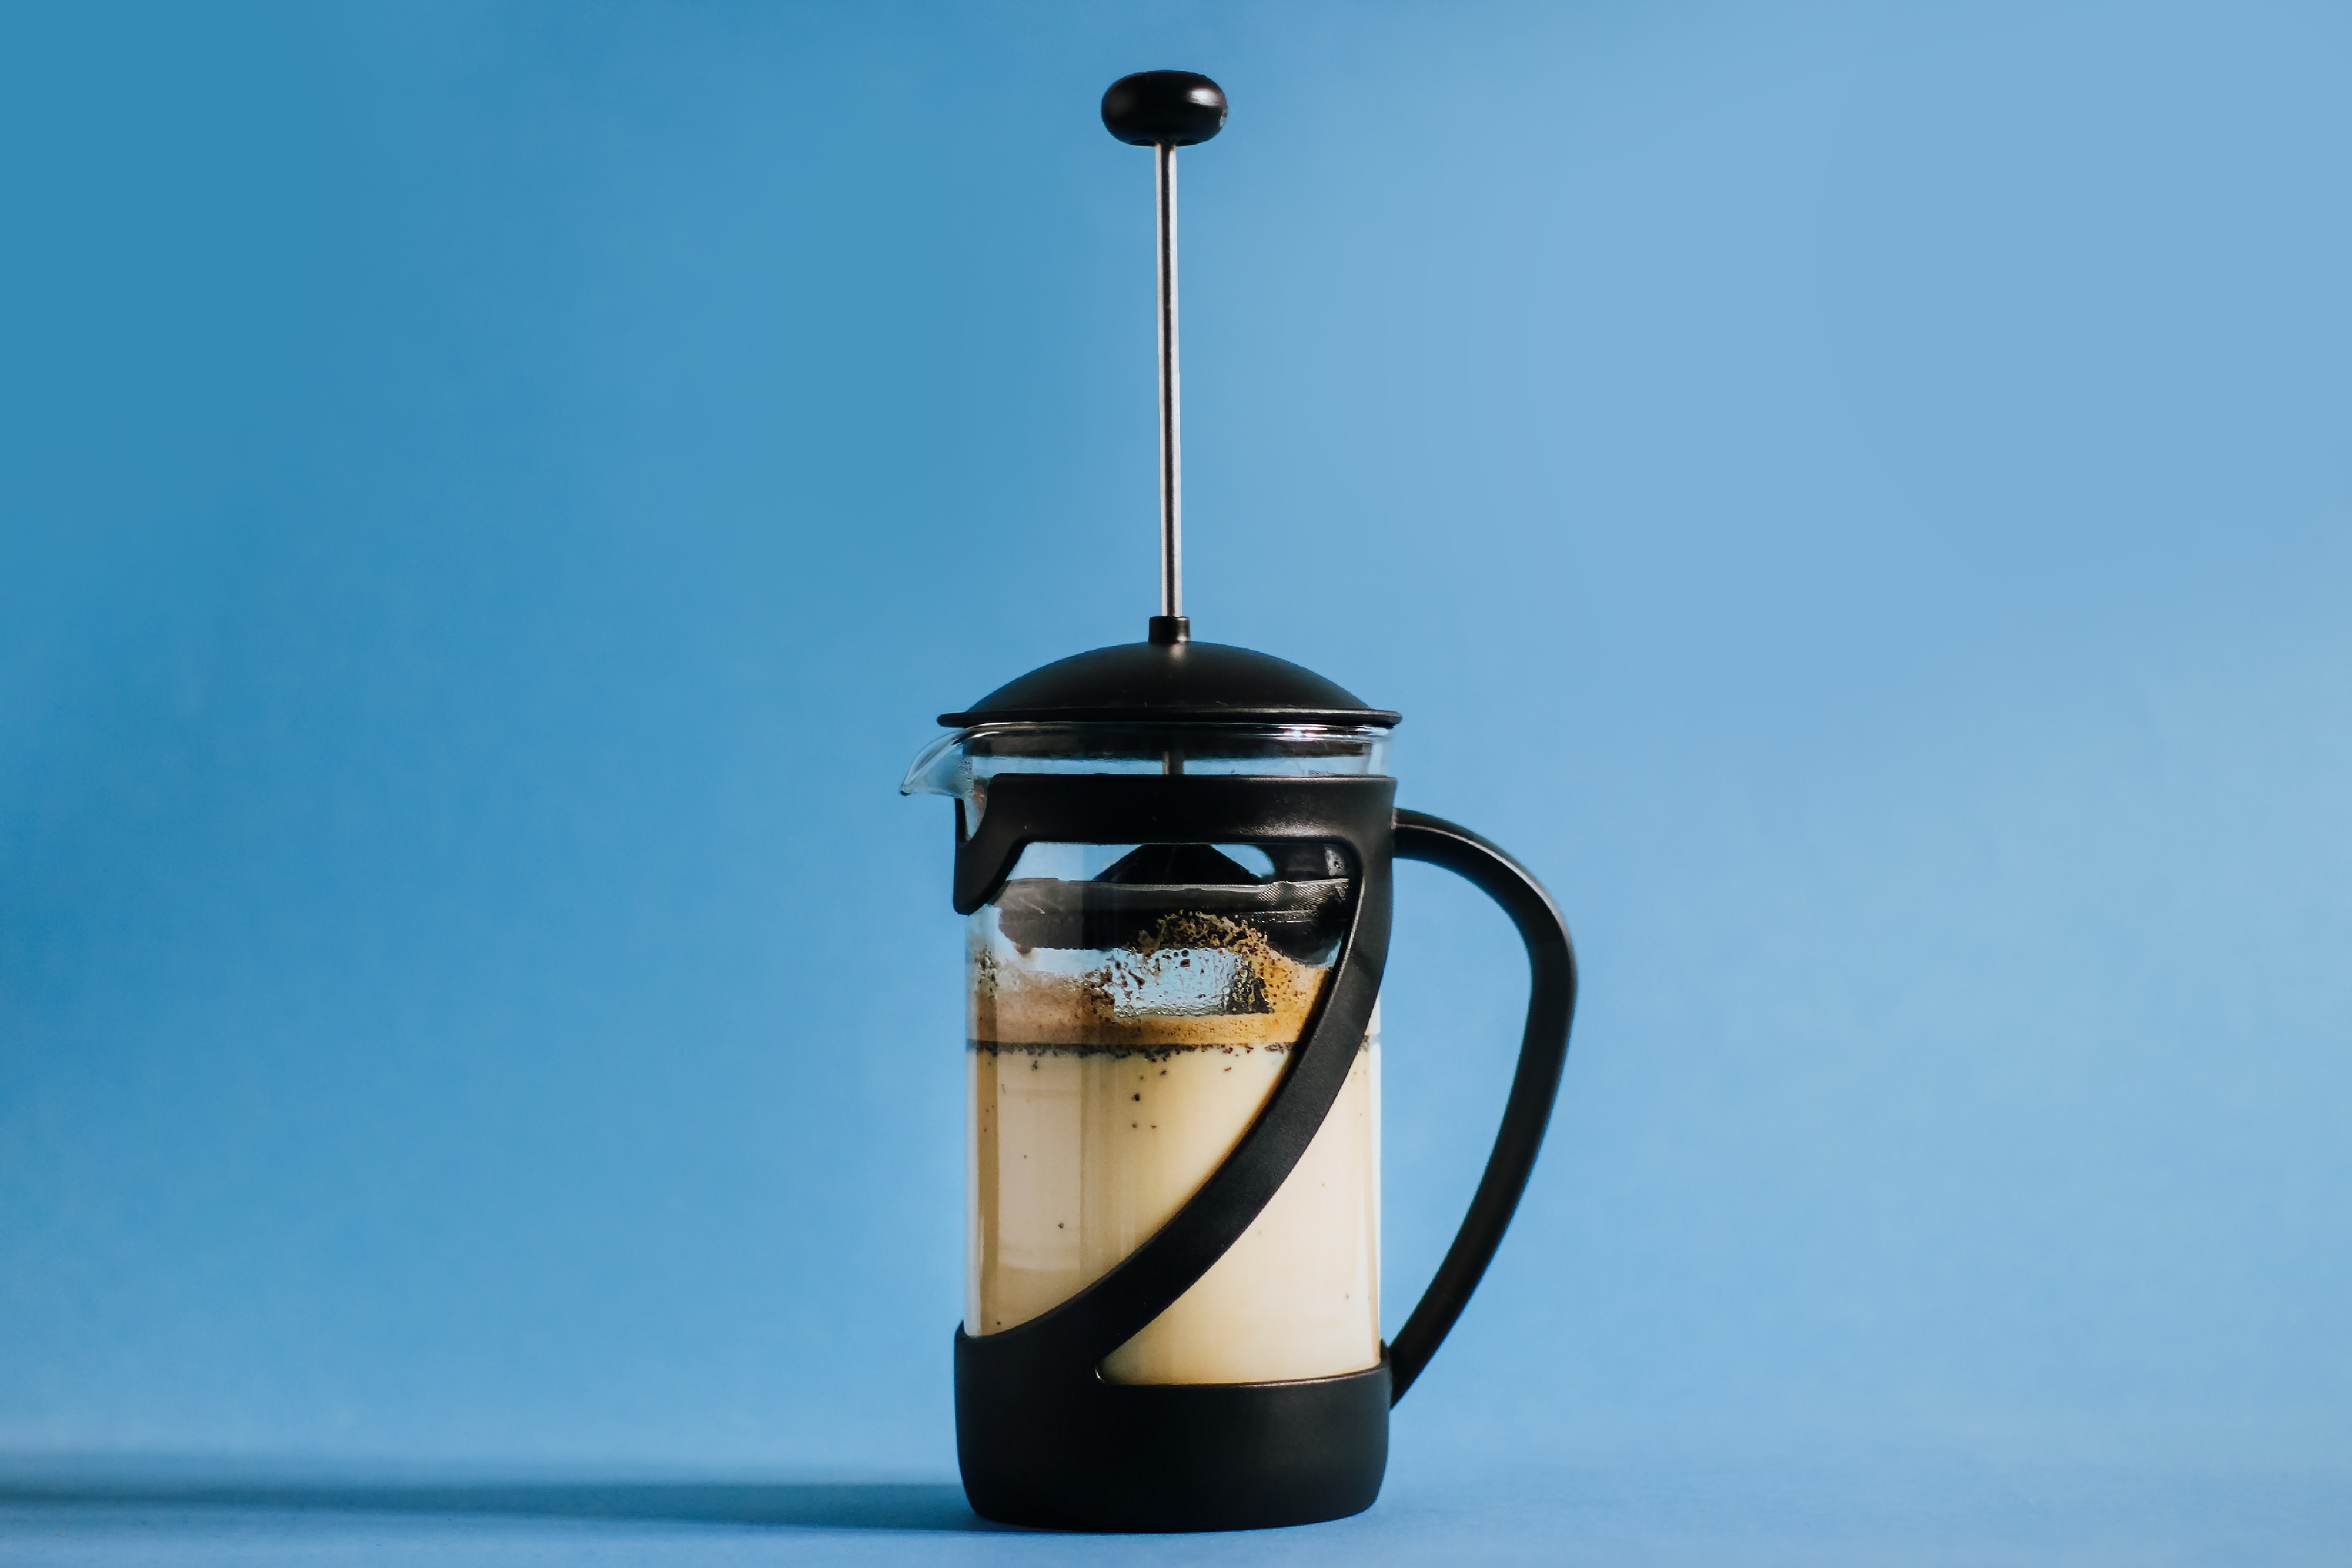 close up photo of black coffee press